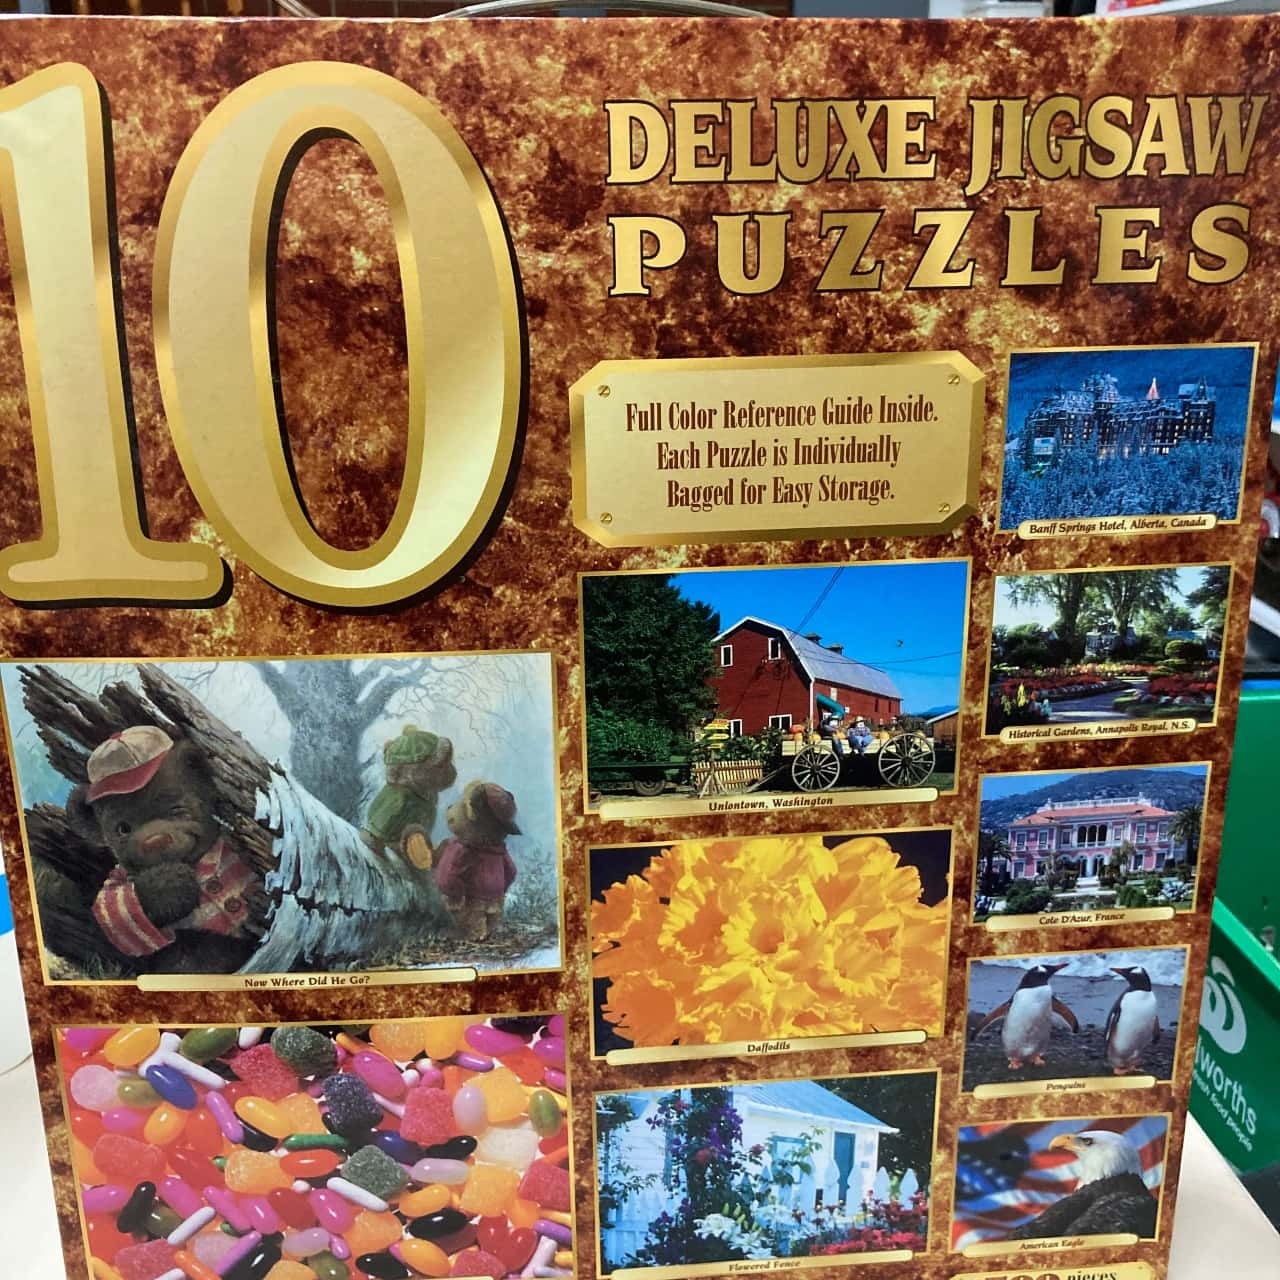 Deluxe Jig saw Puzzles